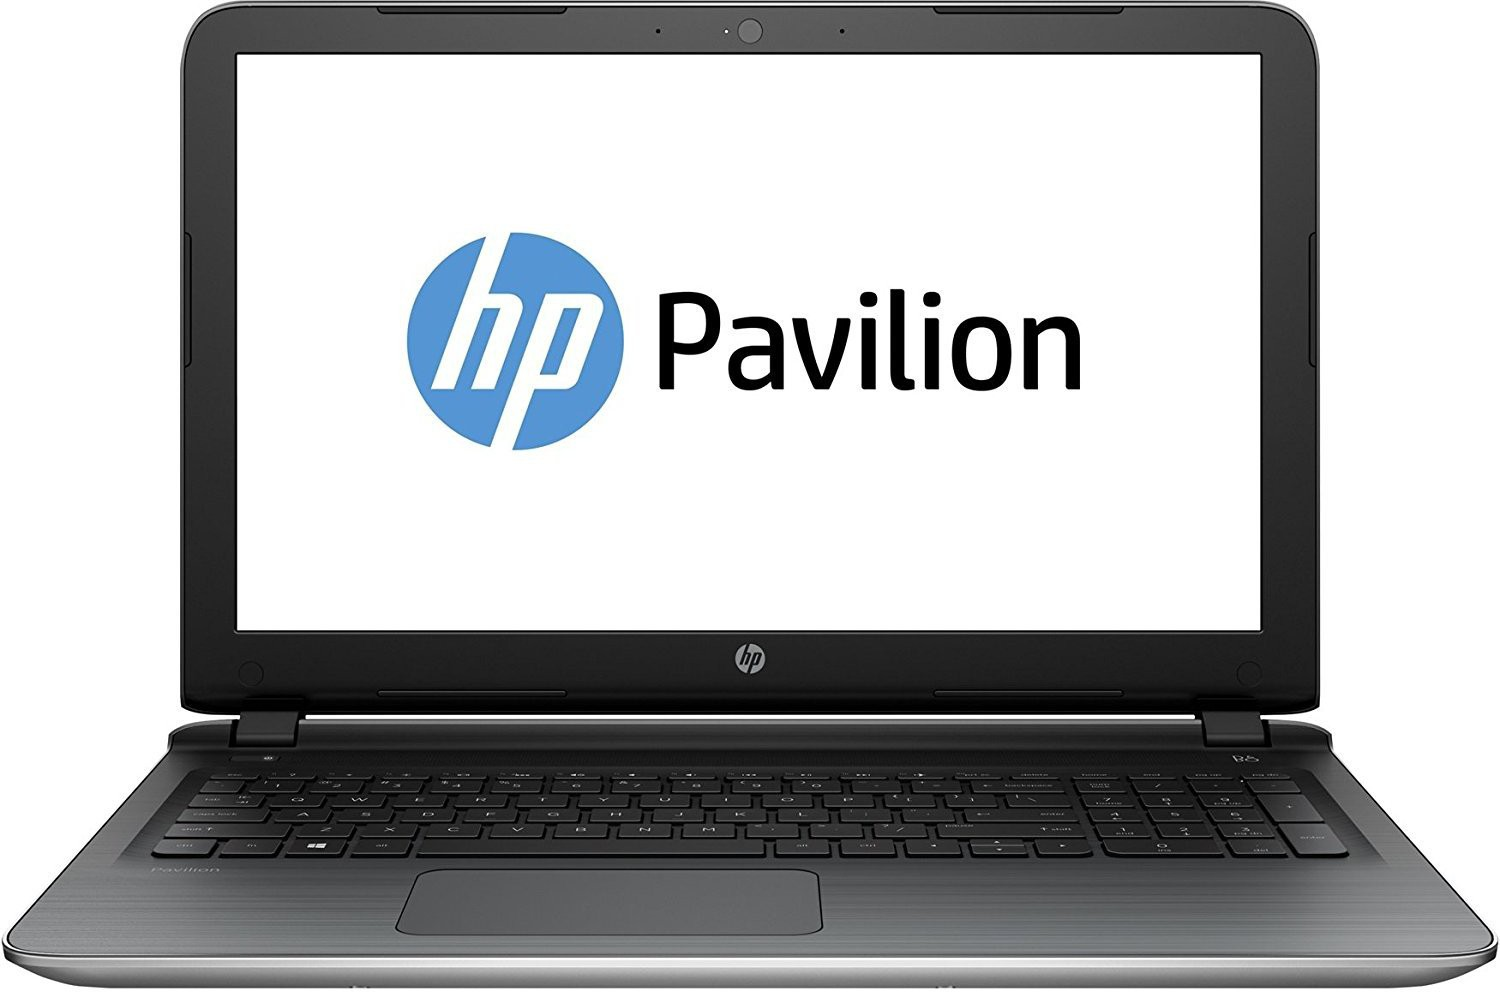 View HP Pavillion Core i5 6th Gen - (8 GB/1 TB HDD/Windows 10 Home/4 GB Graphics) ab521tx Notebook(15.6 inch, SIlver, 2.09 kg) Laptop